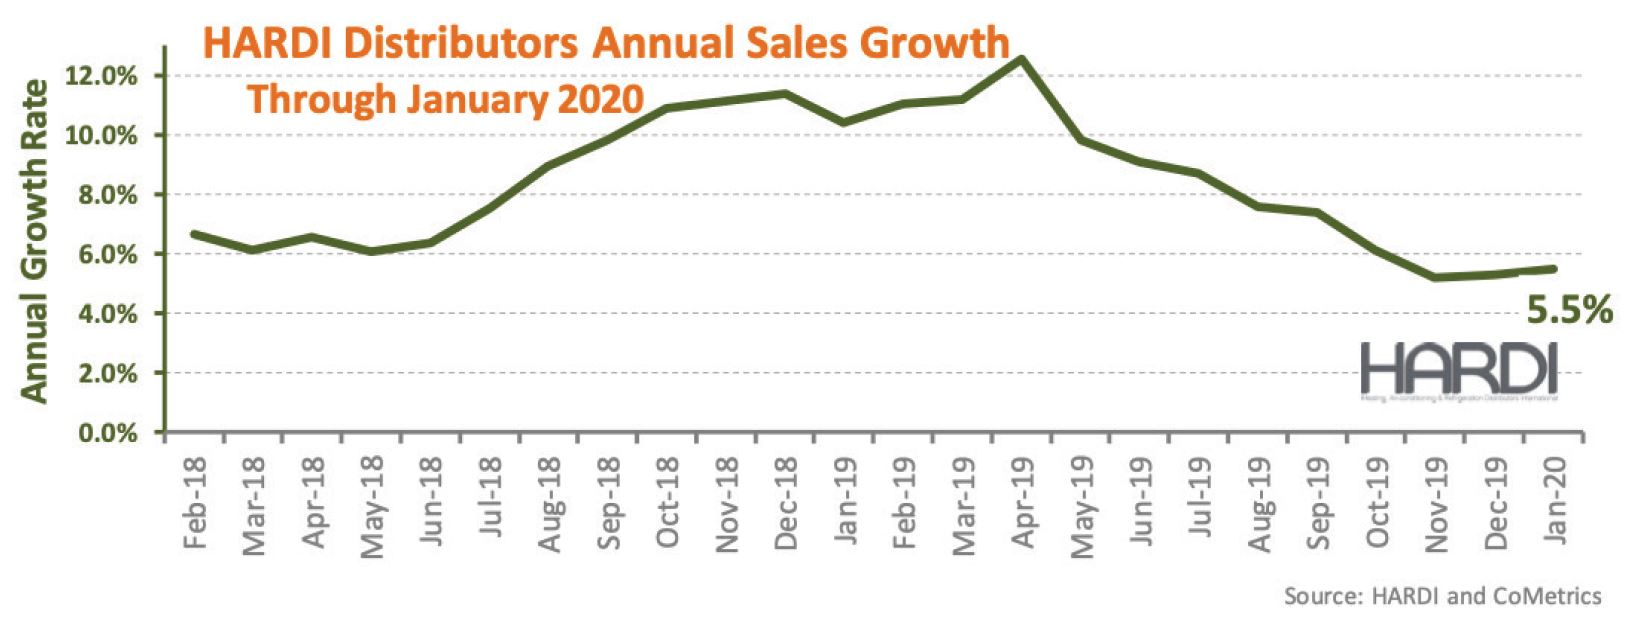 HARDI Distributors Annual Sales Growth Chart.